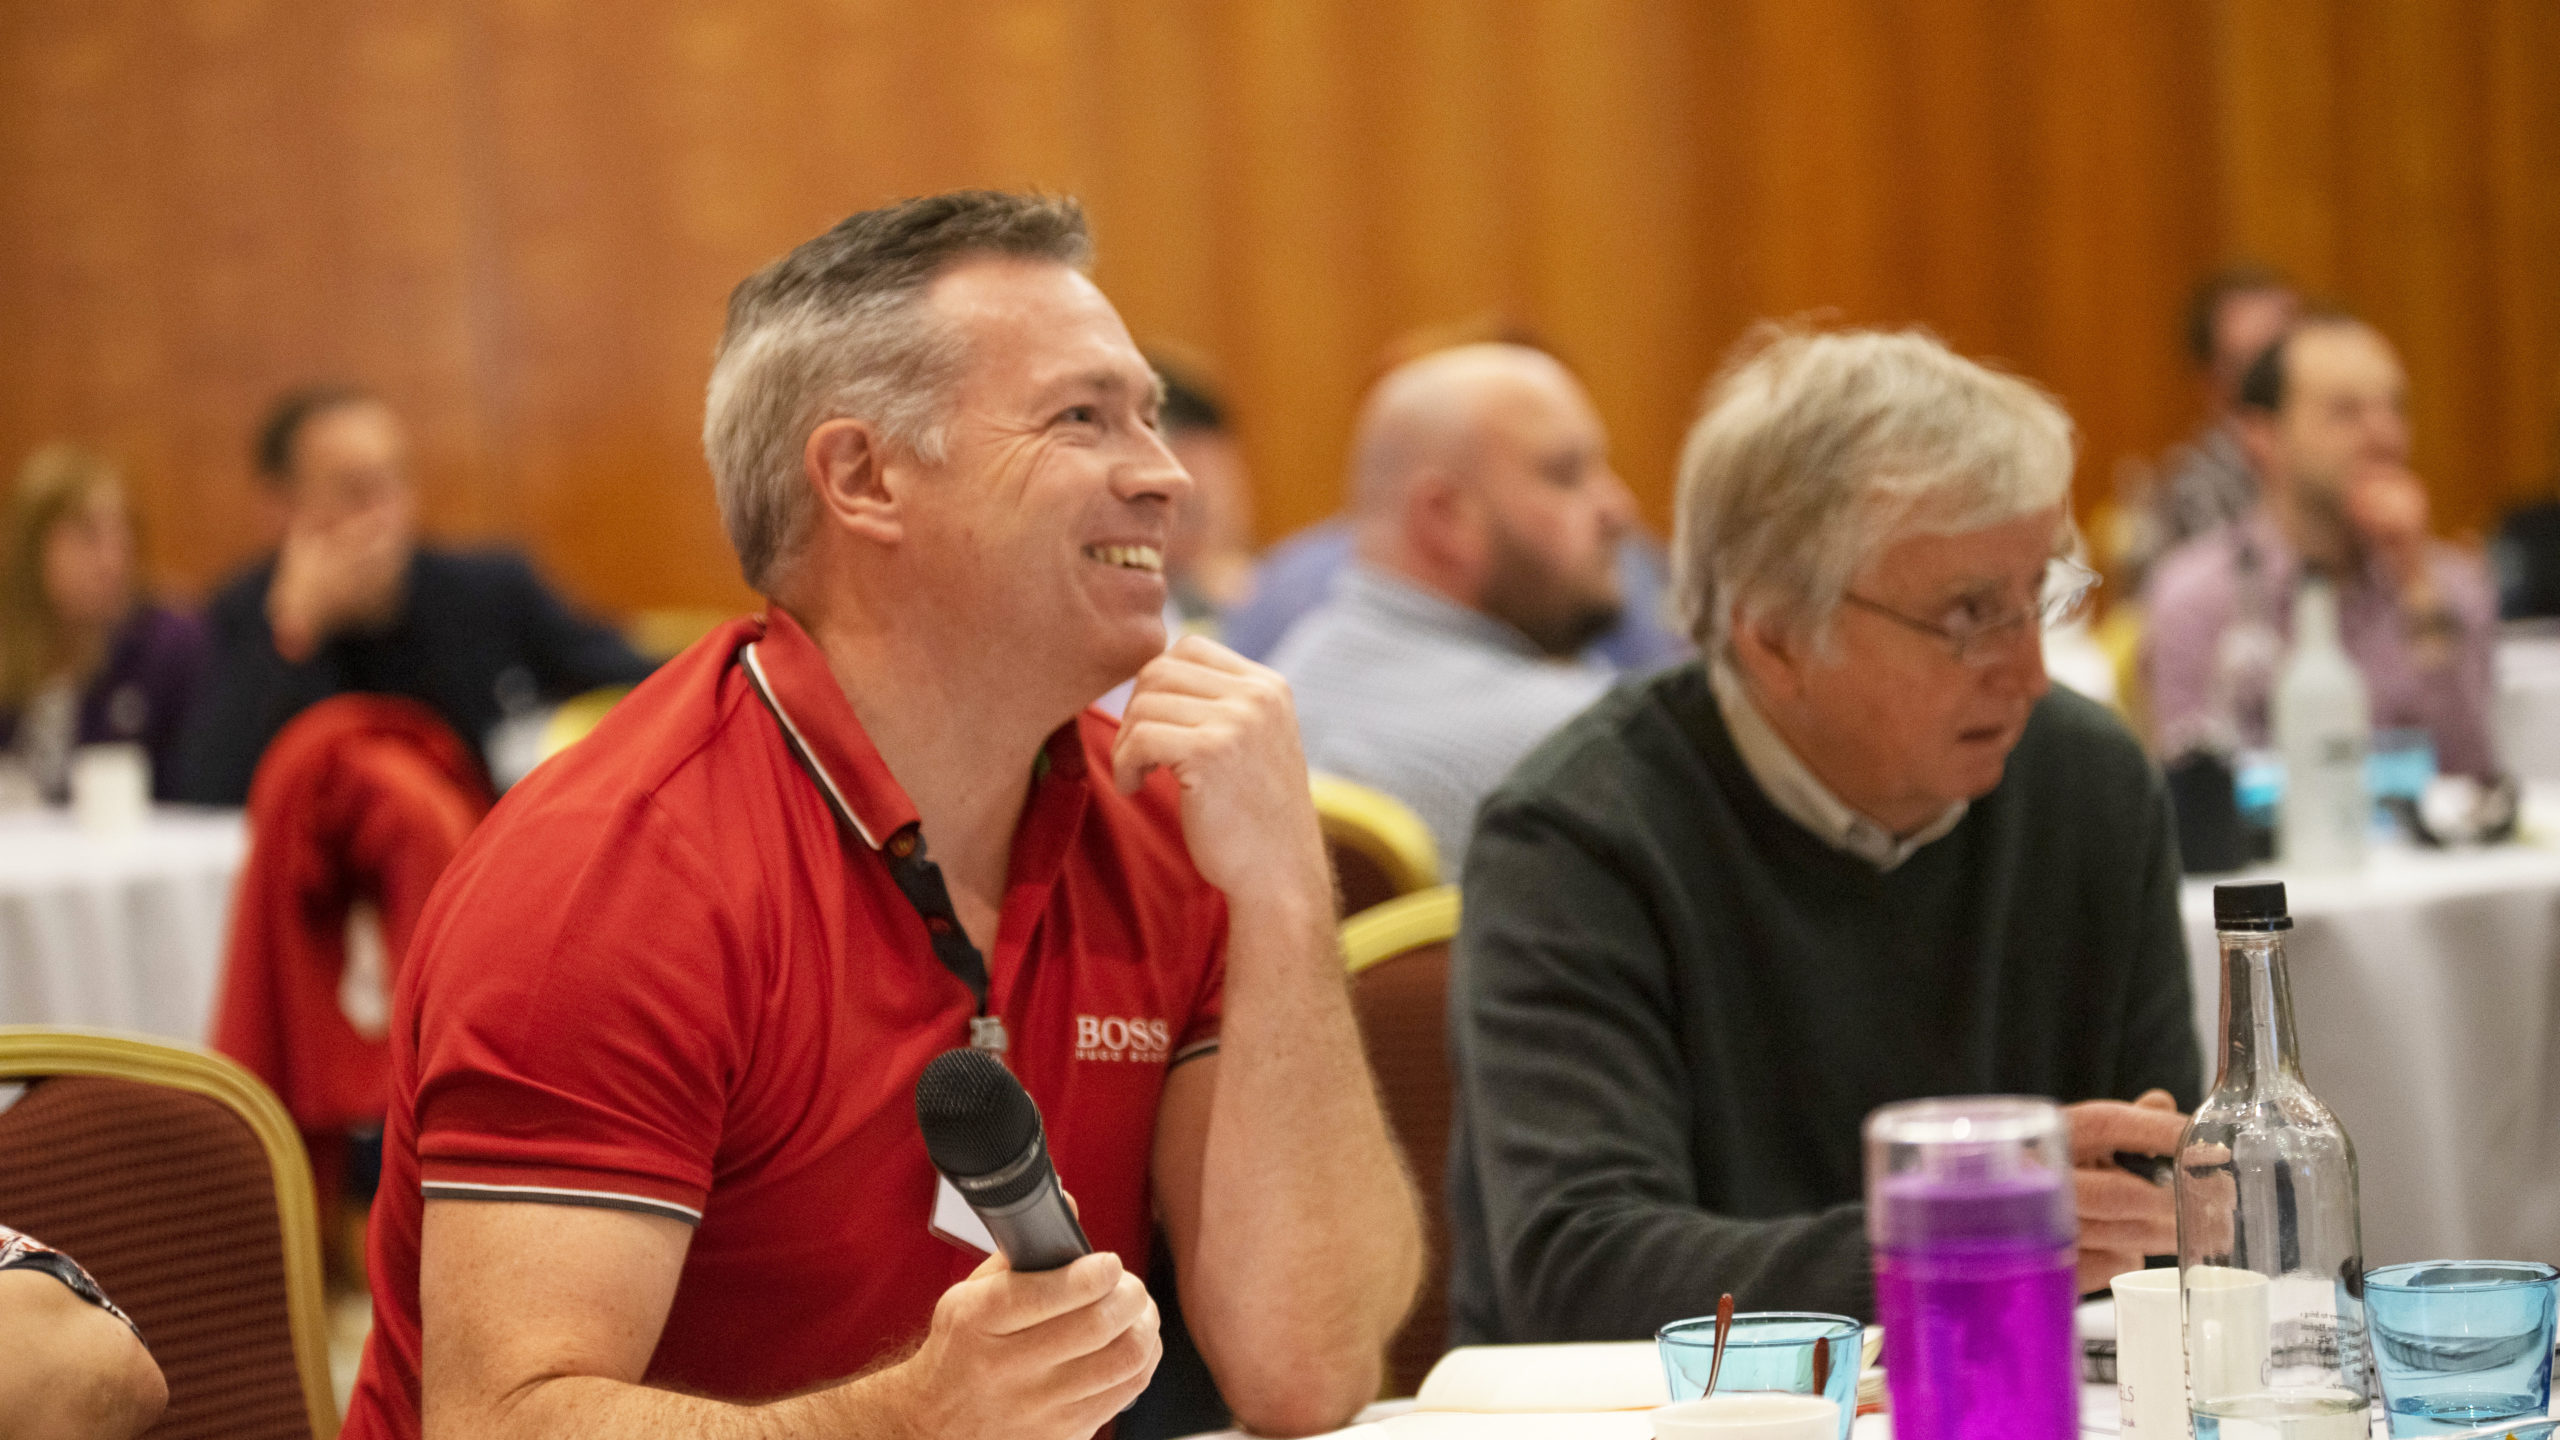 Reuse Network Conference 2019 speakers